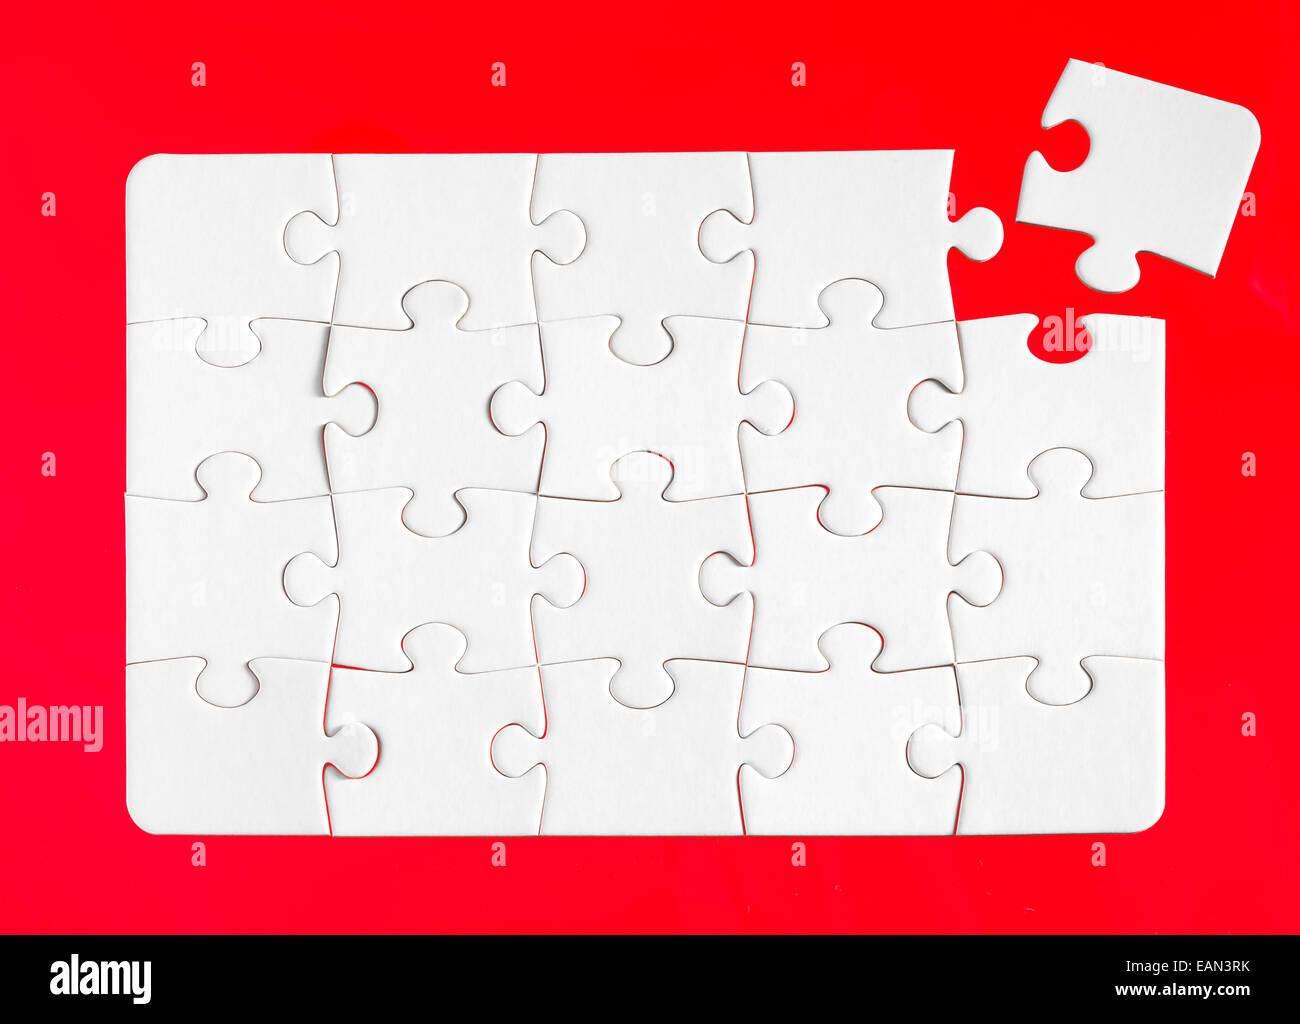 Jigsaw pieces with a red background - Stock Image